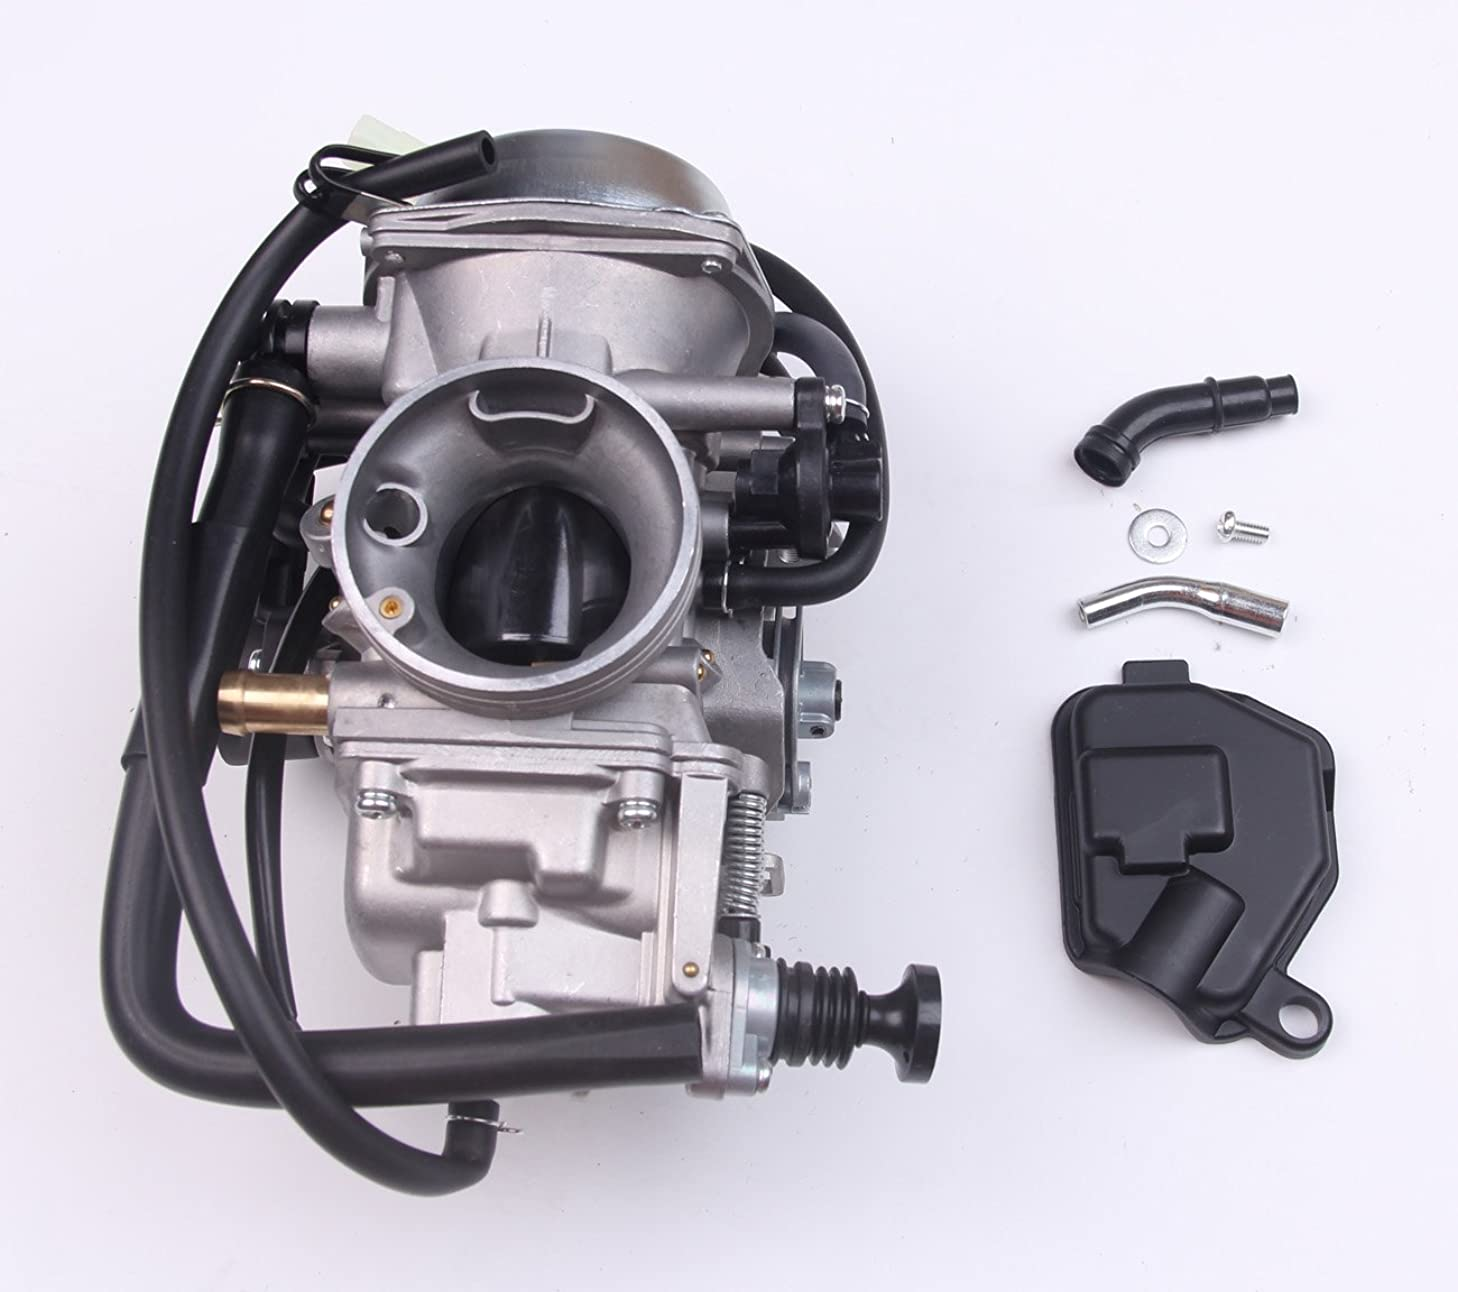 New Carburetor For HONDA TRX500 FOURTRAX FOREMAN TRX500FE TRX500FM TRX500FPE TRX500FPM TRX500TM